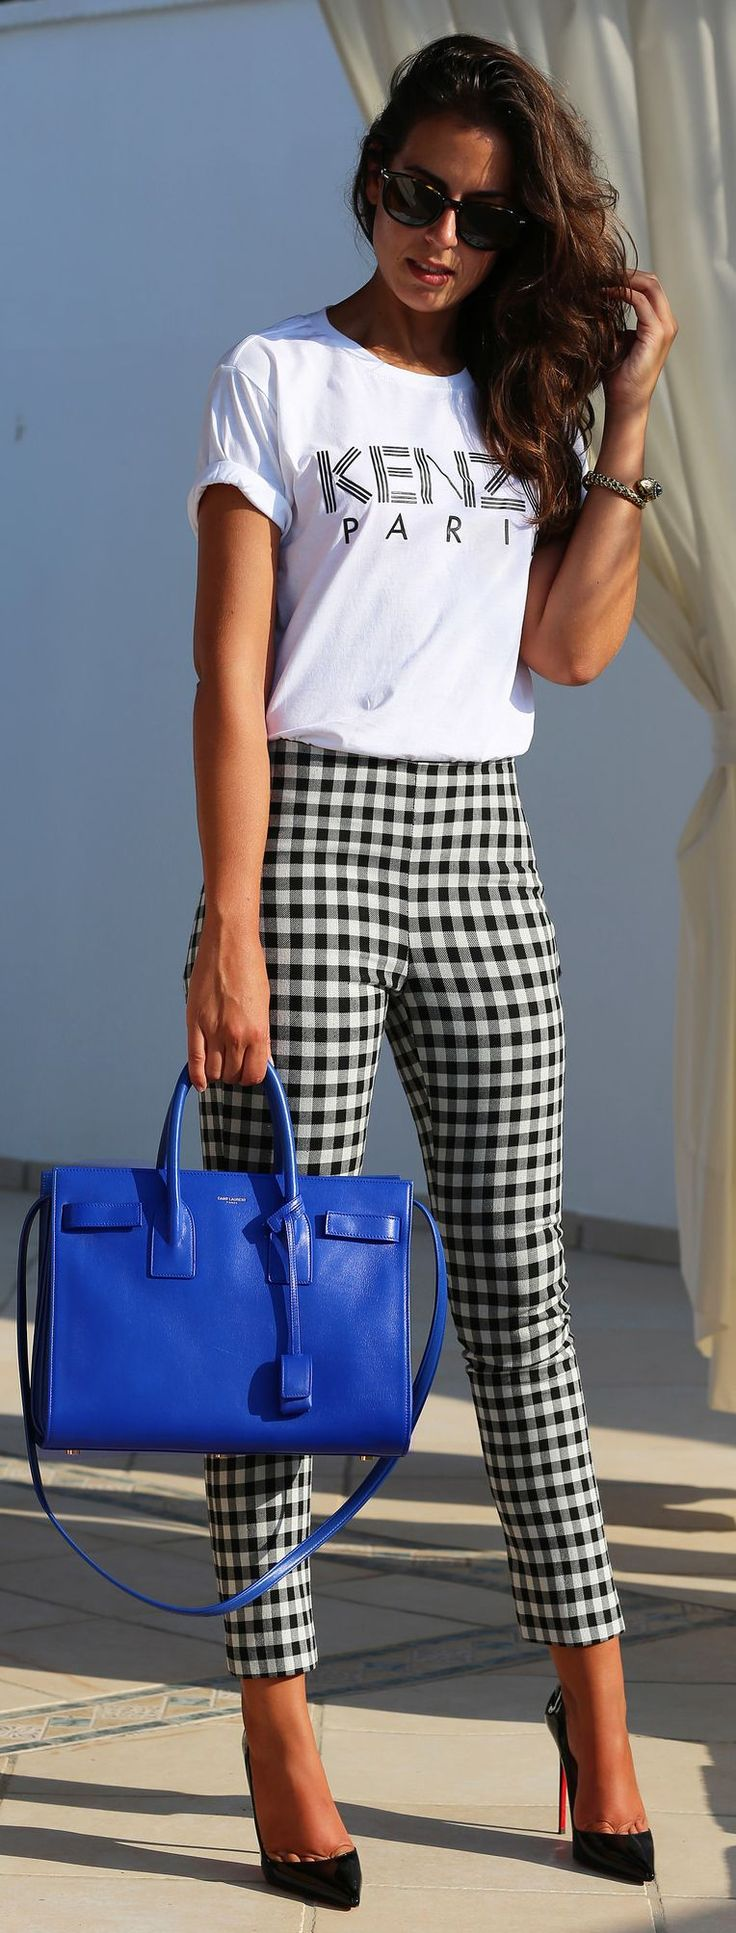 Black t shirt goes with - Women S White And Black Print Crew Neck T Shirt Black And White Gingham Skinny Pants Black Leather Pumps Blue Leather Tote Bag